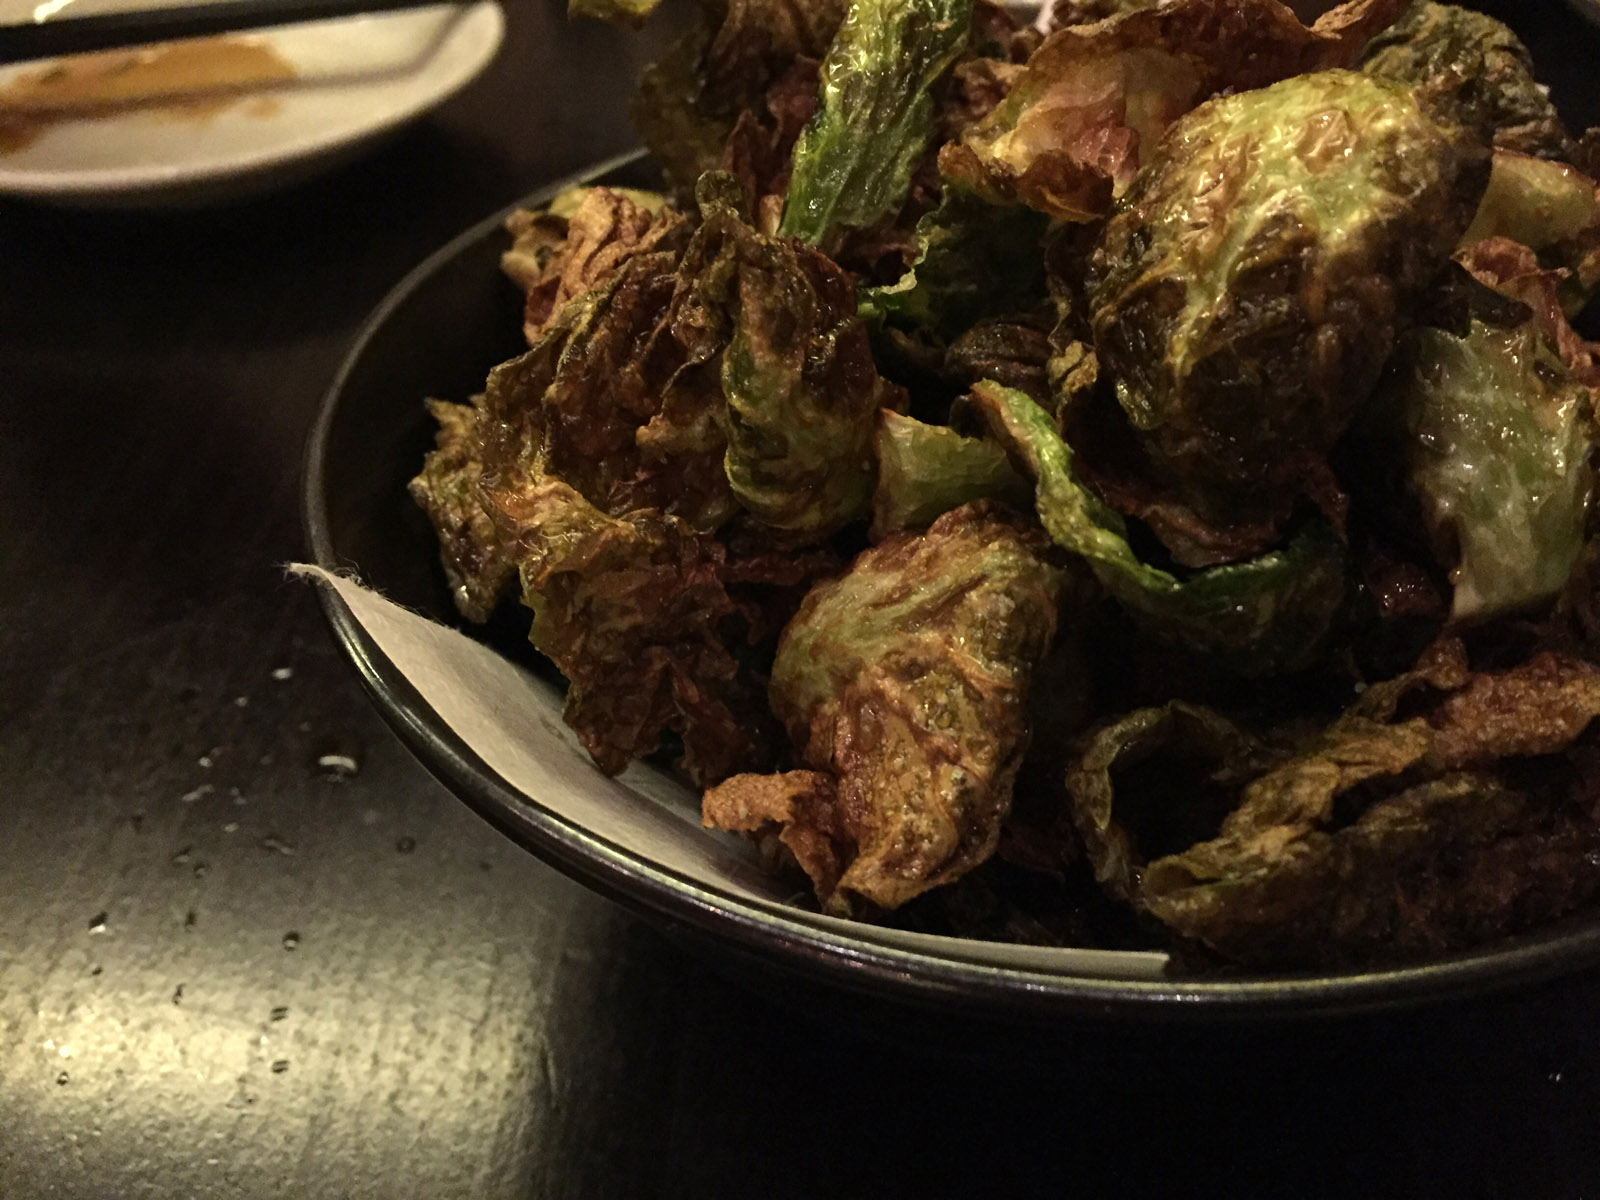 Brussels Sprouts With Yuzu Kosho Powder. On the other hand, these guys were my favorite bites of the meal. Leafed (Leaved?) Brussels Sprouts lightly sautéed (or fried?)  and topped with a sprinkling of delicious yuzu kosho powder. Some at the table described them as easy to consume as popcorn. This was a nightly special, but I think Kinjiro would be wise to add this to the nightly menu.